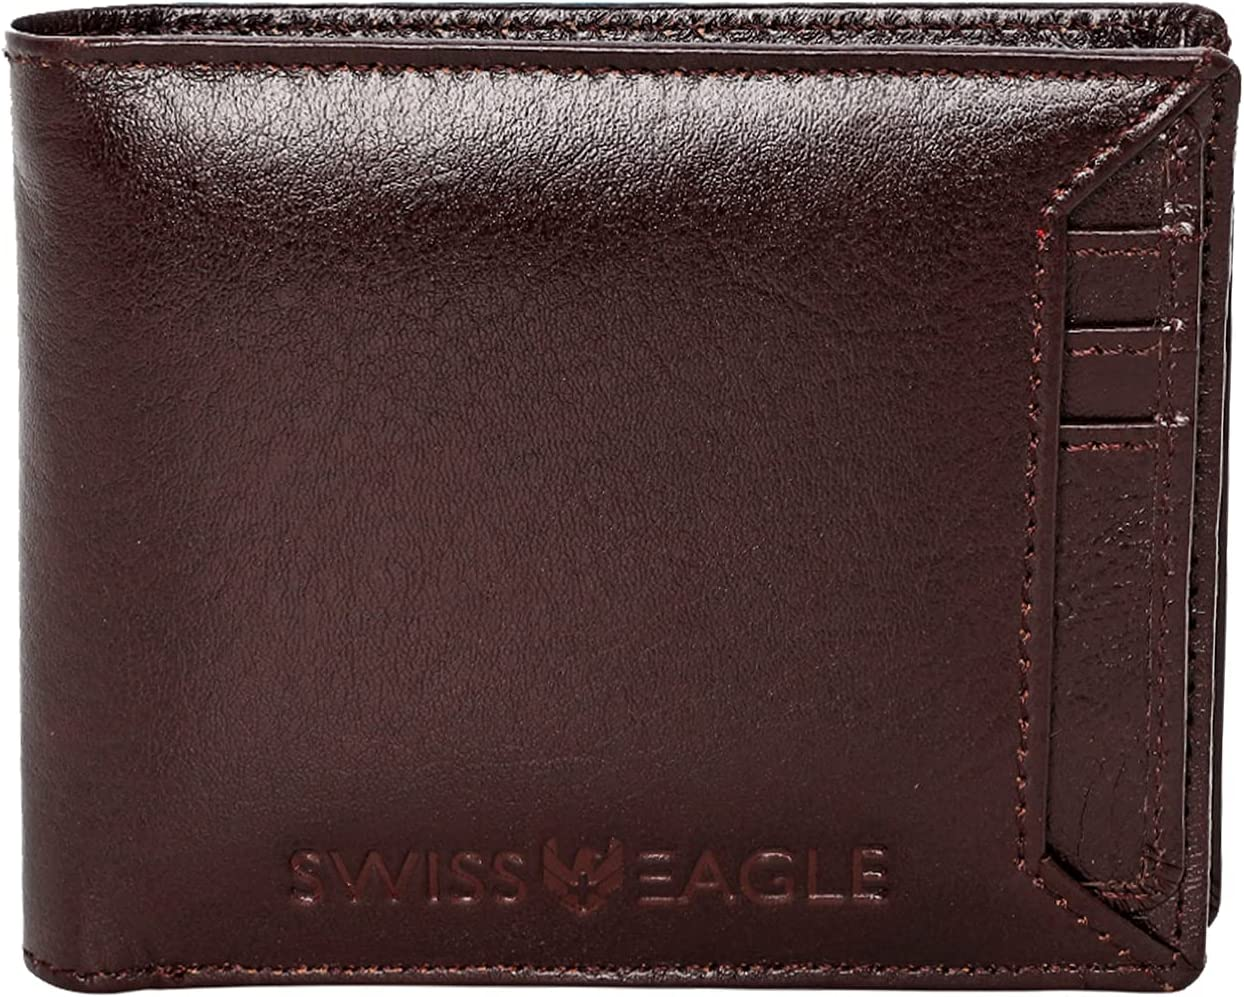 Swiss Eagle Minimalist Leather Wallet for Men - RFID Protection Bifold with 9 Card Slot and ID Window